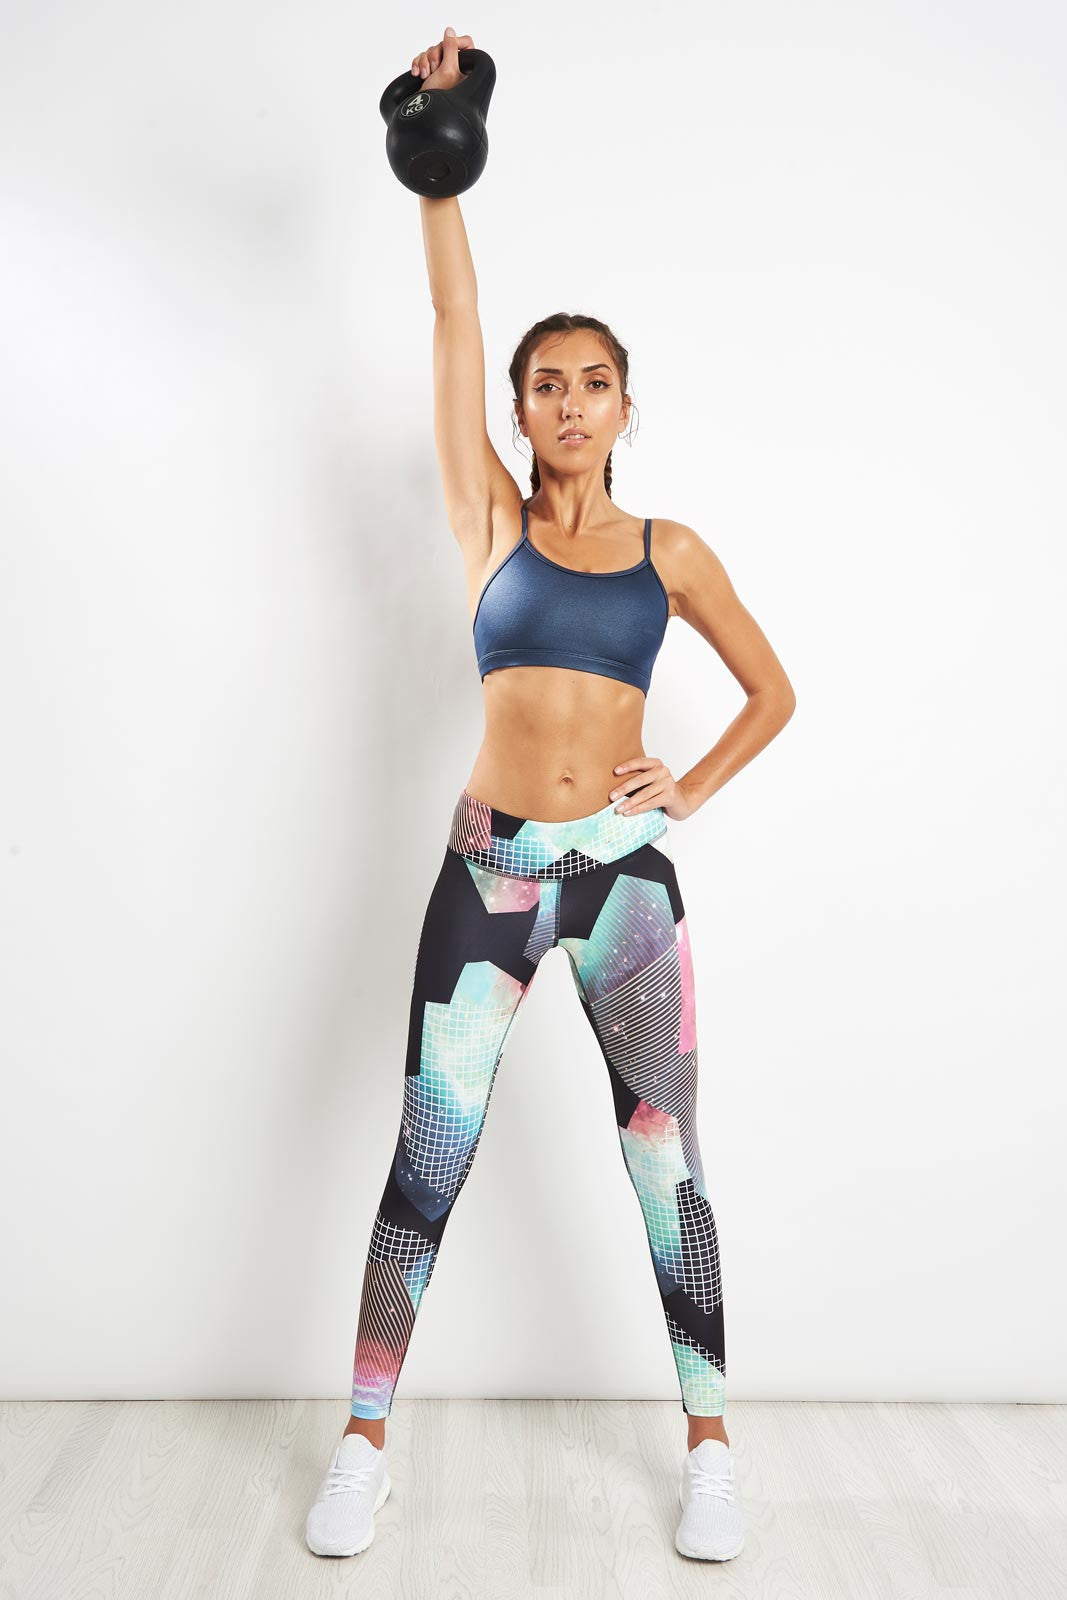 Reebok Hero Rebel Bra - Blue image 4 - The Sports Edit